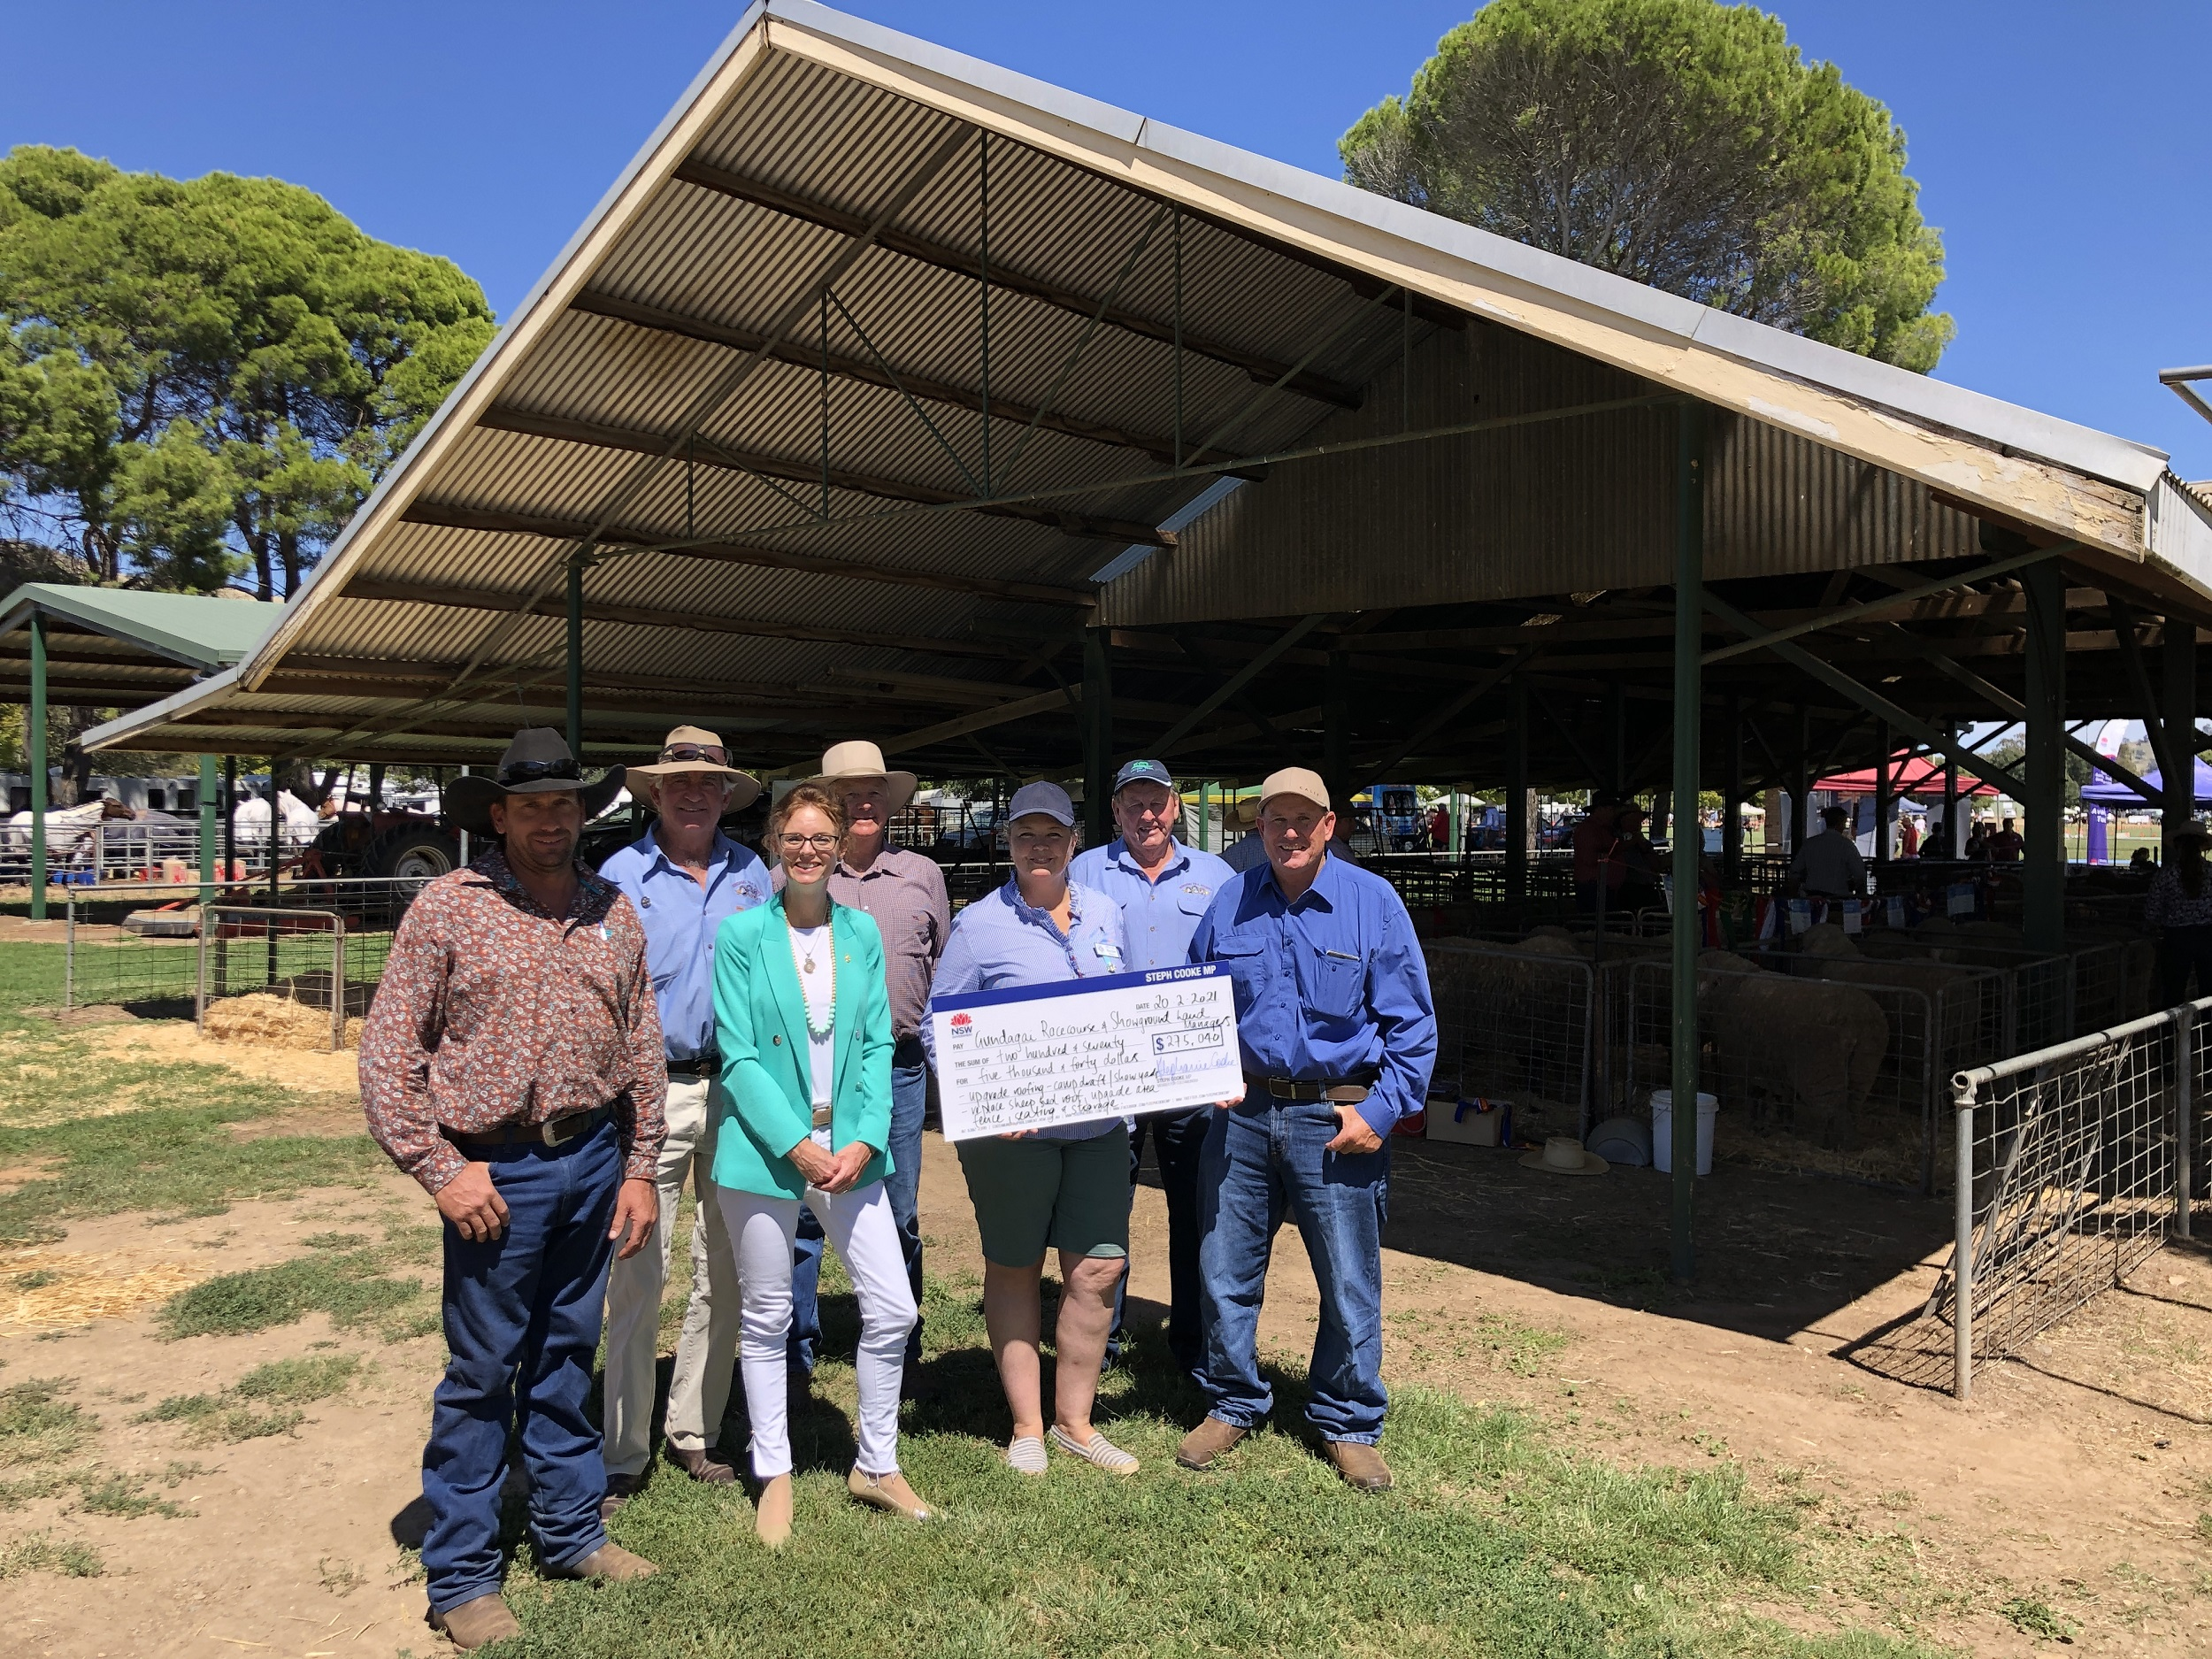 Steph Cooke stands with a group of people holding a large cheque in front of a livestock area.